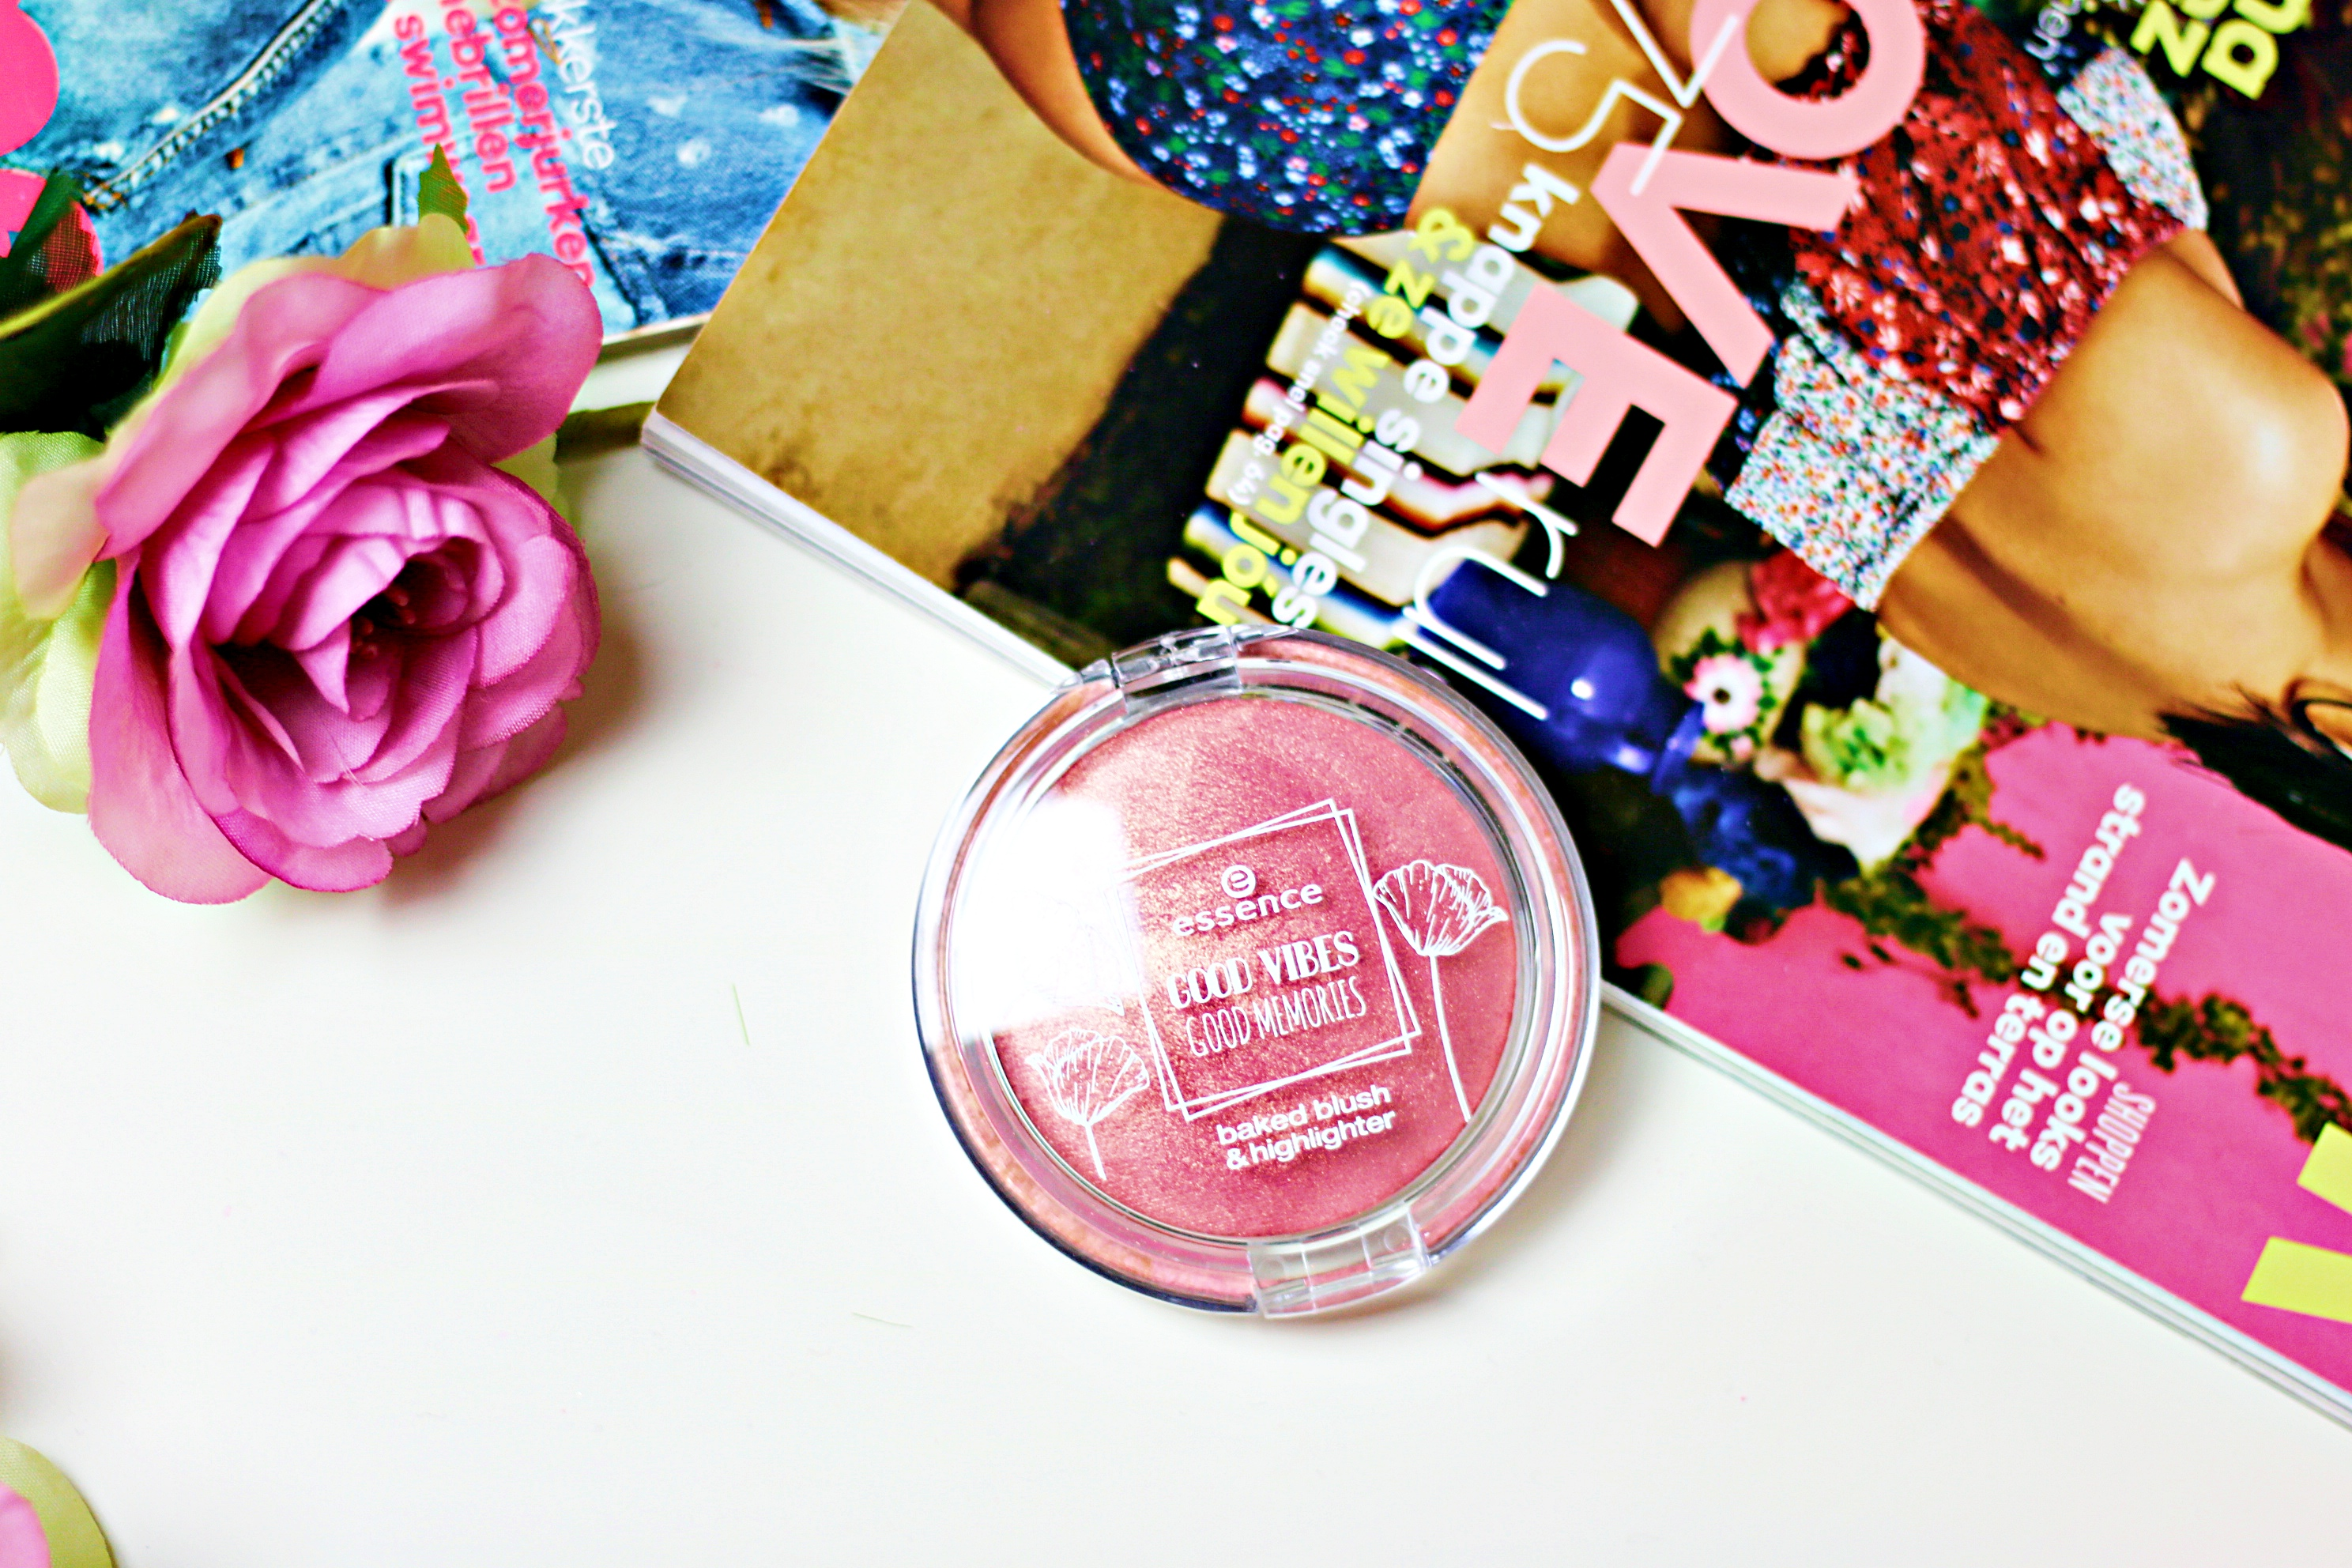 Essence Good Vibes Good Memories Baked Blush & Highlighter